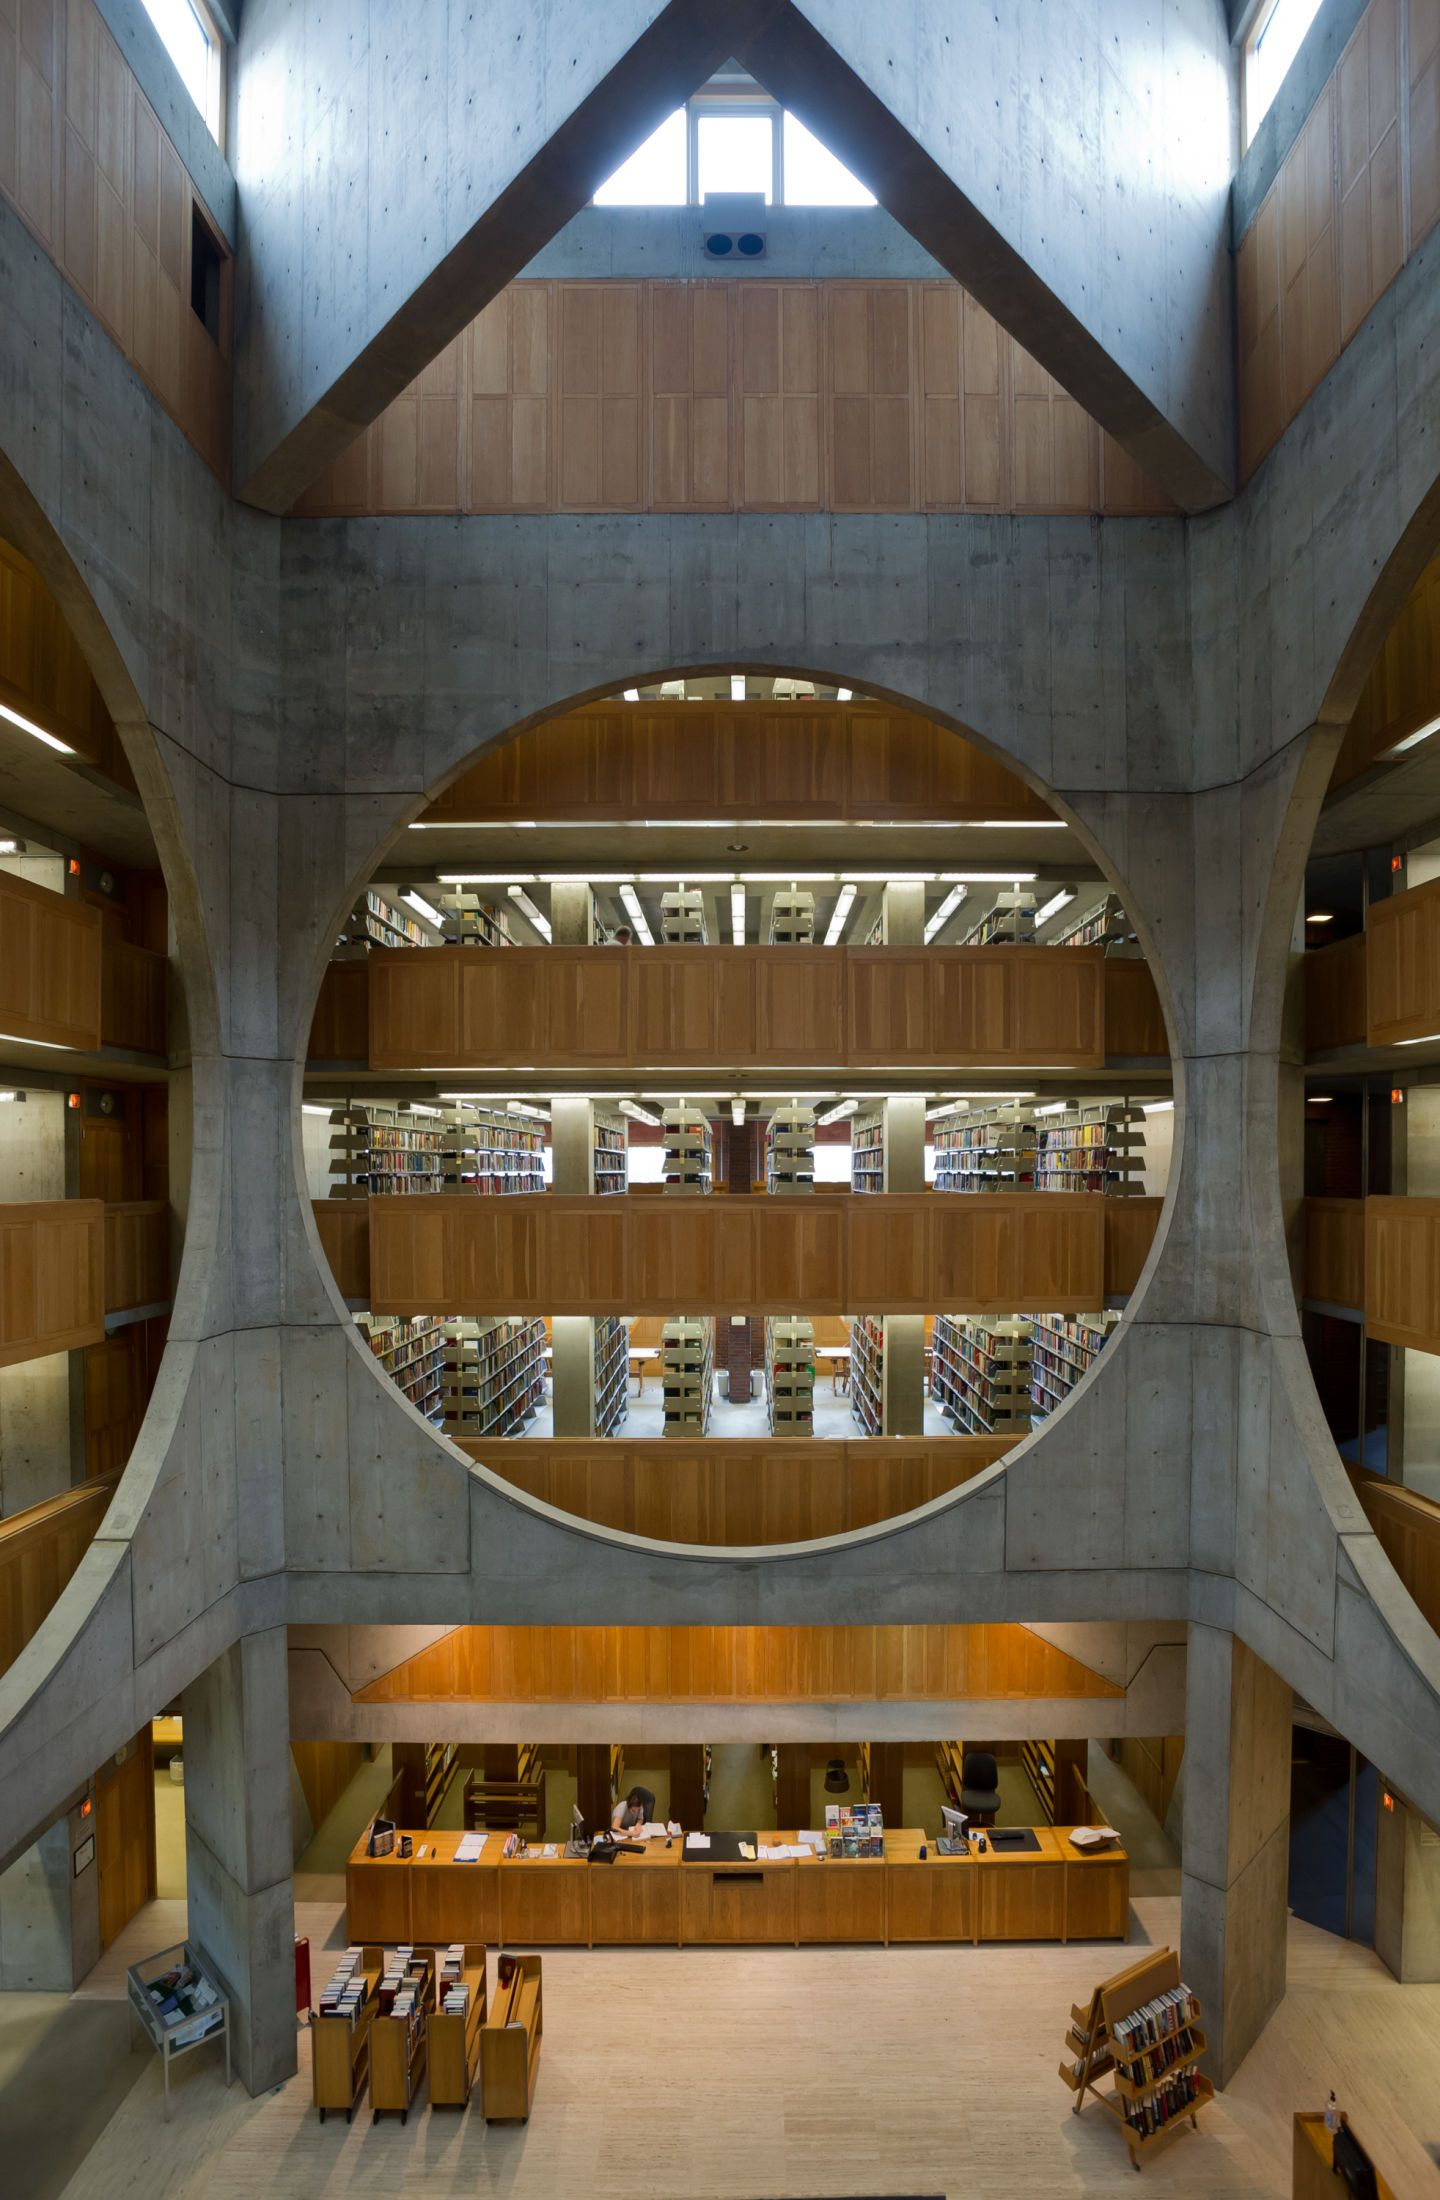 Louis i kahn xavier de jaur guiberry library at for Louis i khan